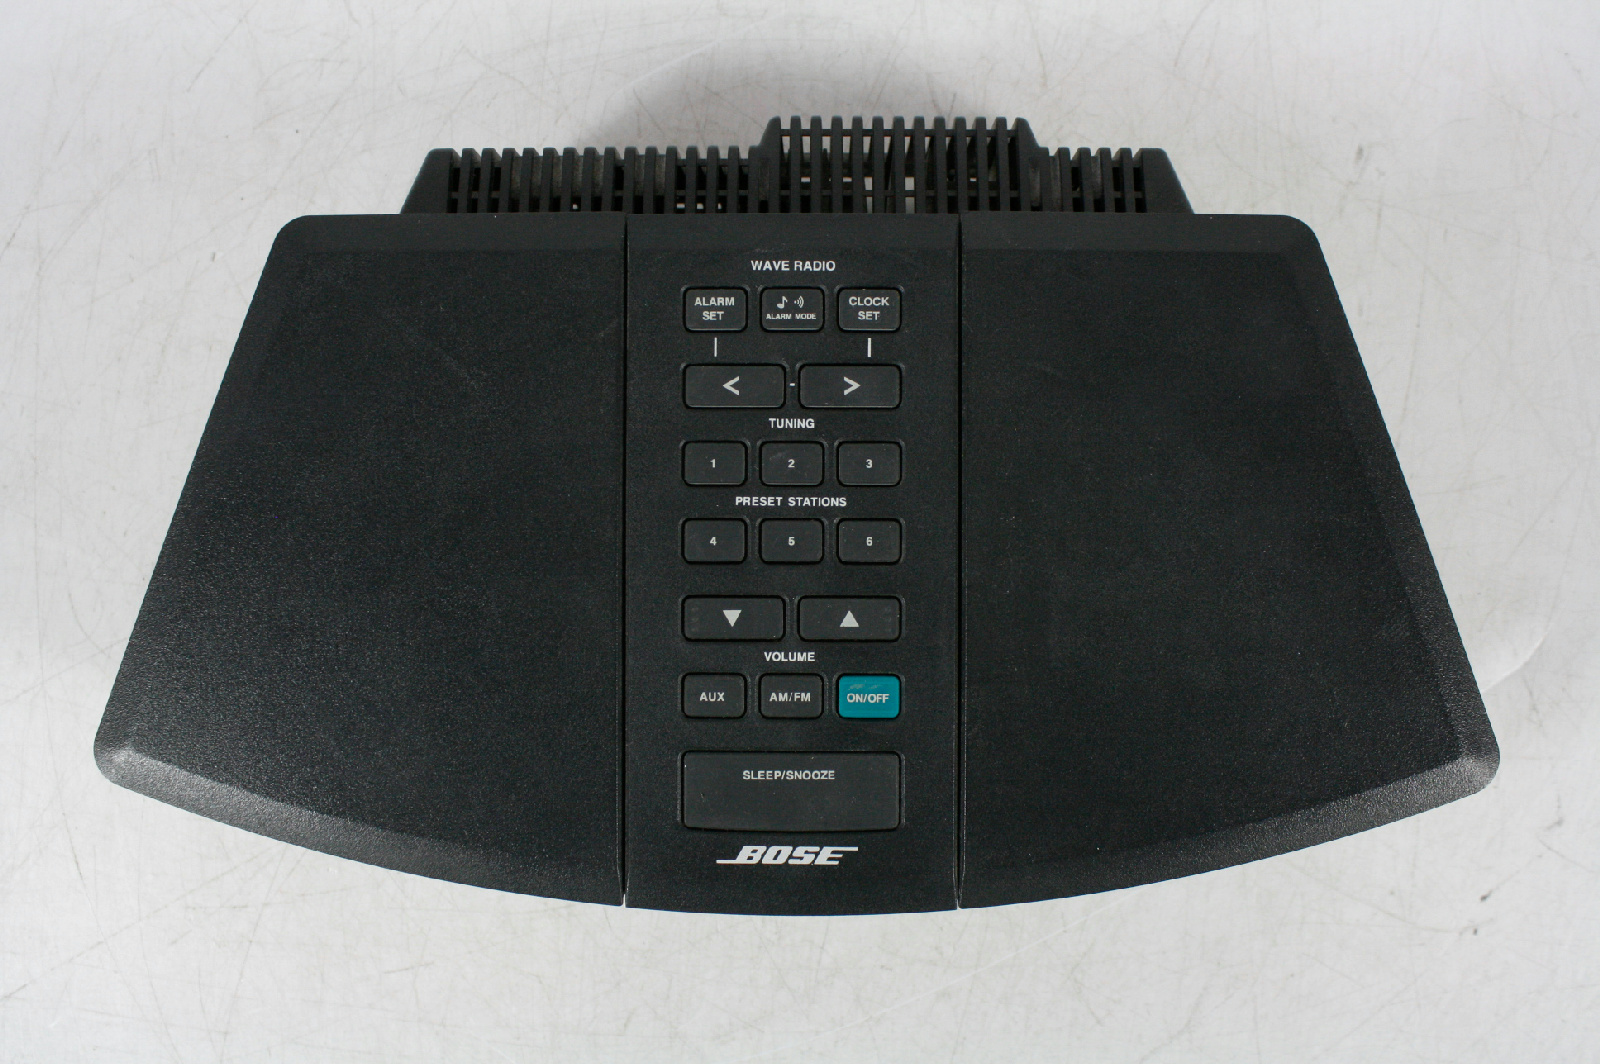 bose wave radio awr1 1w am fm stereo player. Black Bedroom Furniture Sets. Home Design Ideas